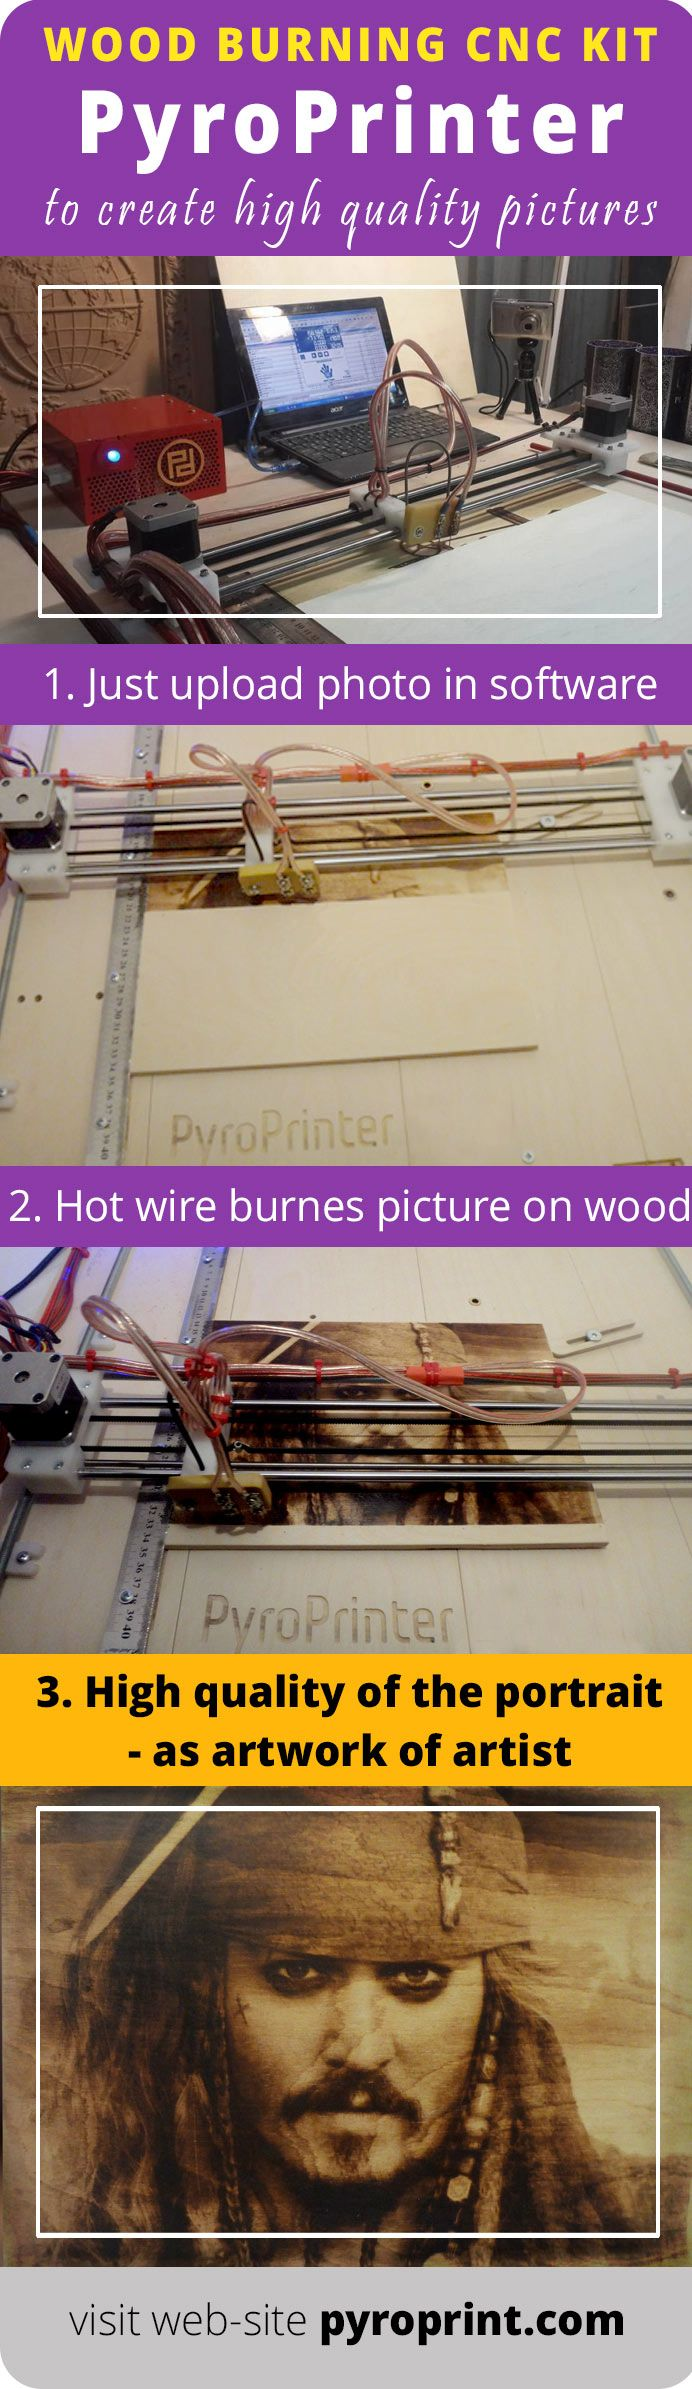 Wood burning kit - CNC Pyroprinter. You can make high quality pyrography (wood burning) pictures like professional artist. Just upload the photo in Simple SoftWare. Fix wooden piece in work field and press Start! CNC will burn picture in 1.5-2 hours itself! Simple operating and high quality pictures! Perfect machine for your home business!